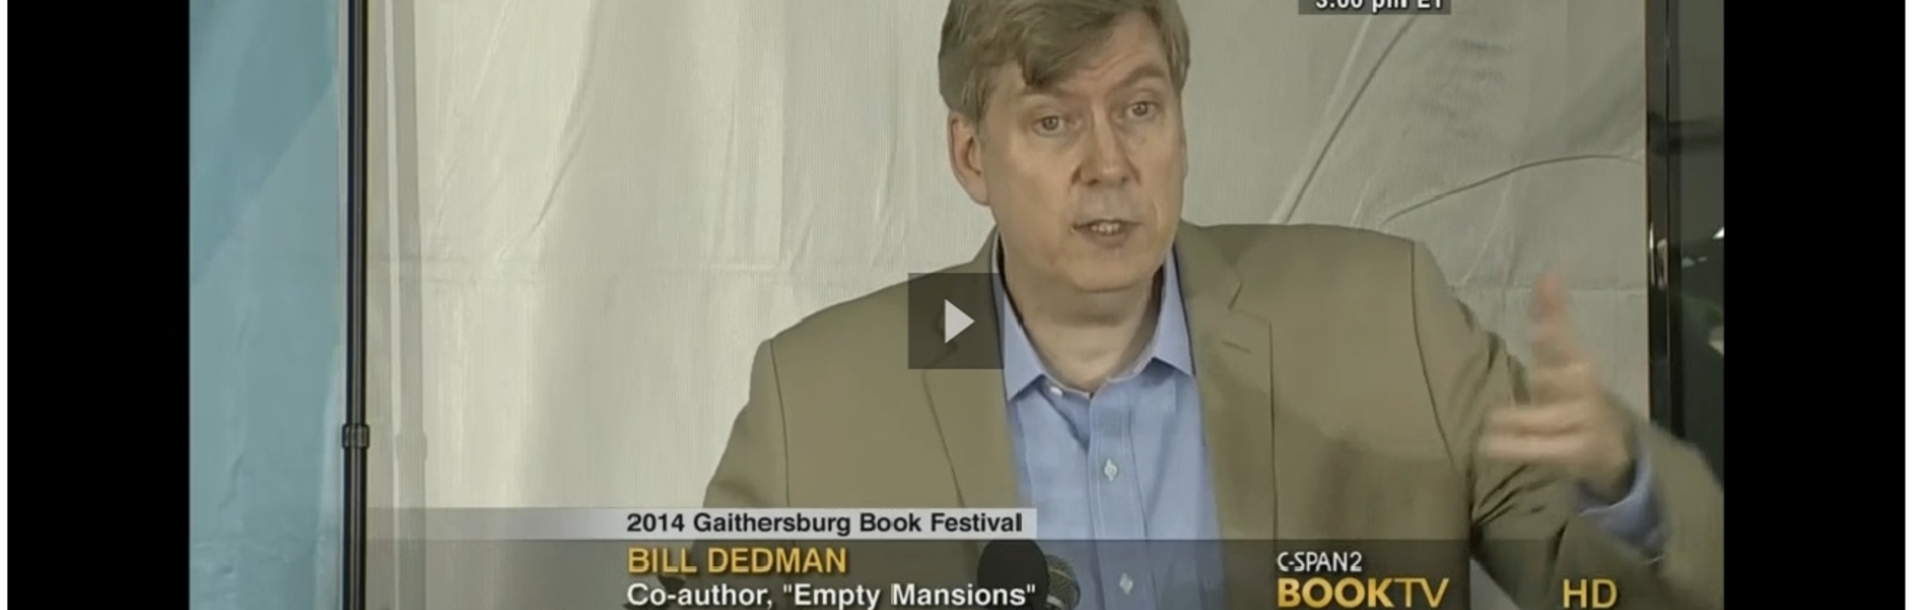 Author Bill Dedman on C-SPAN TV